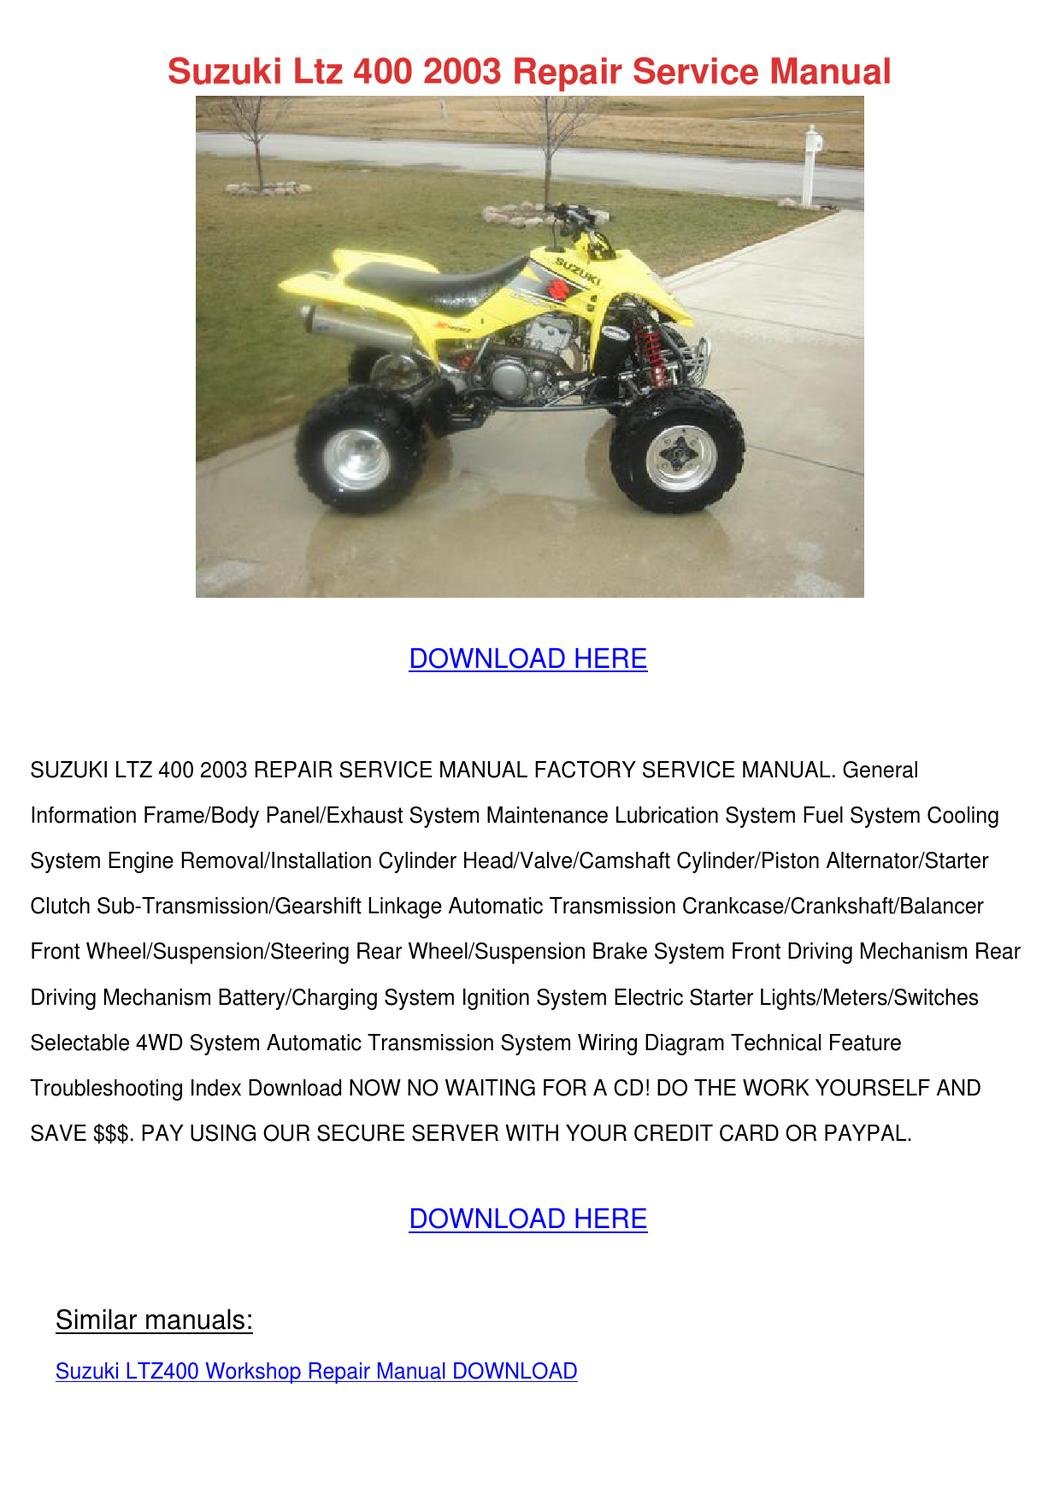 Suzuki Ltz 400 2003 Repair Service Manual By Sammyrobey Issuu 4x4 Wiring Diagram